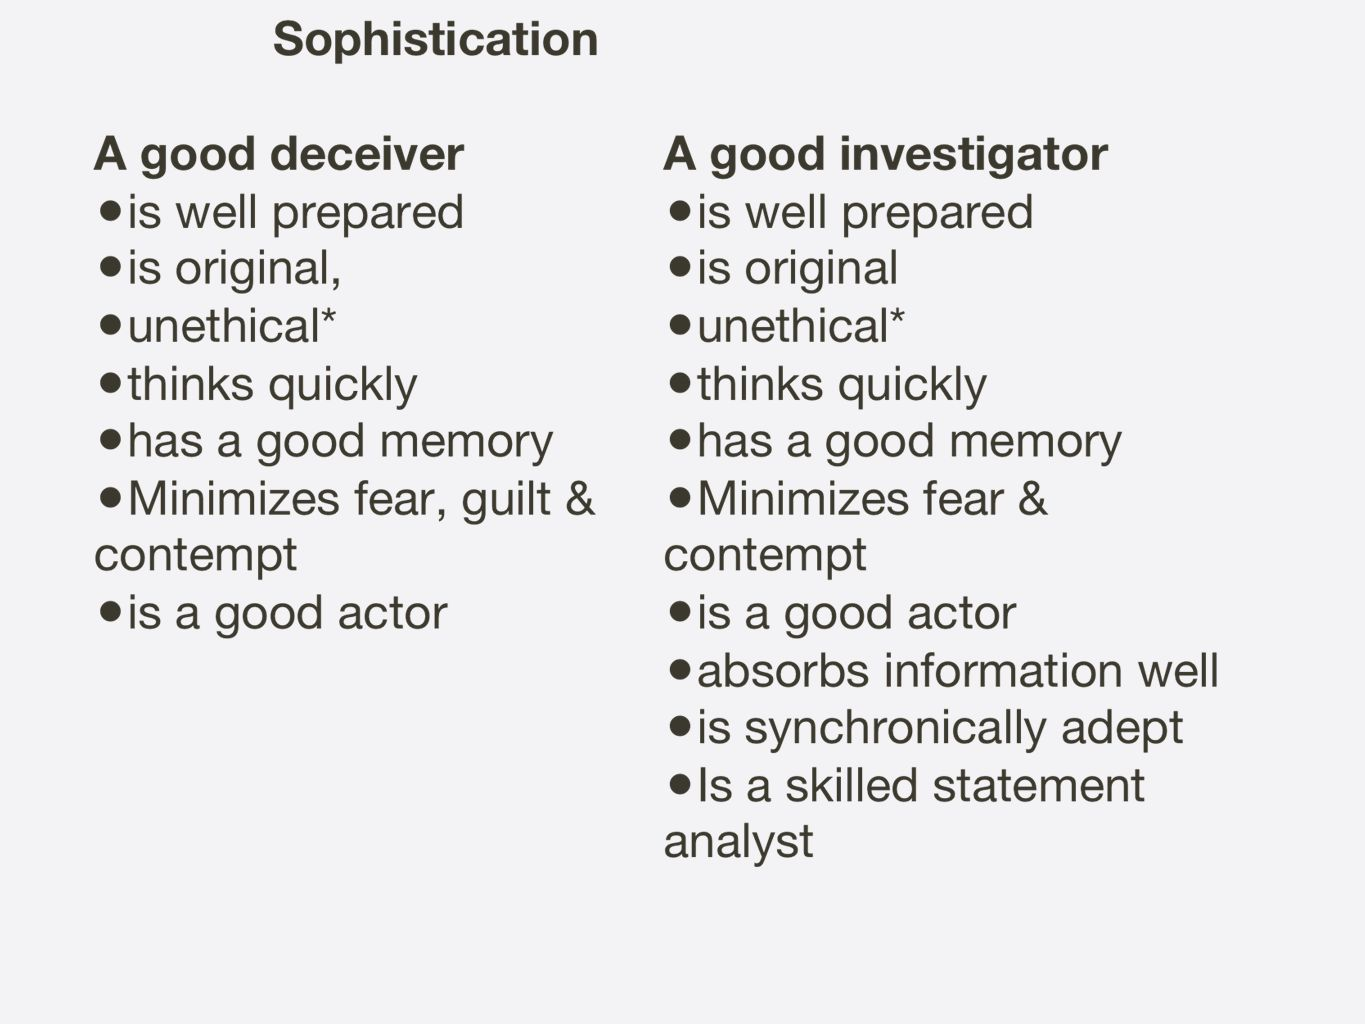 The dilemma for the investigator is that if s/he works within an ethical framework s/he will not function at as high logical levels as the deceiver and will have less ingenuity since thinking within ethical boundaries limits possible choices at any given moment in the interview.